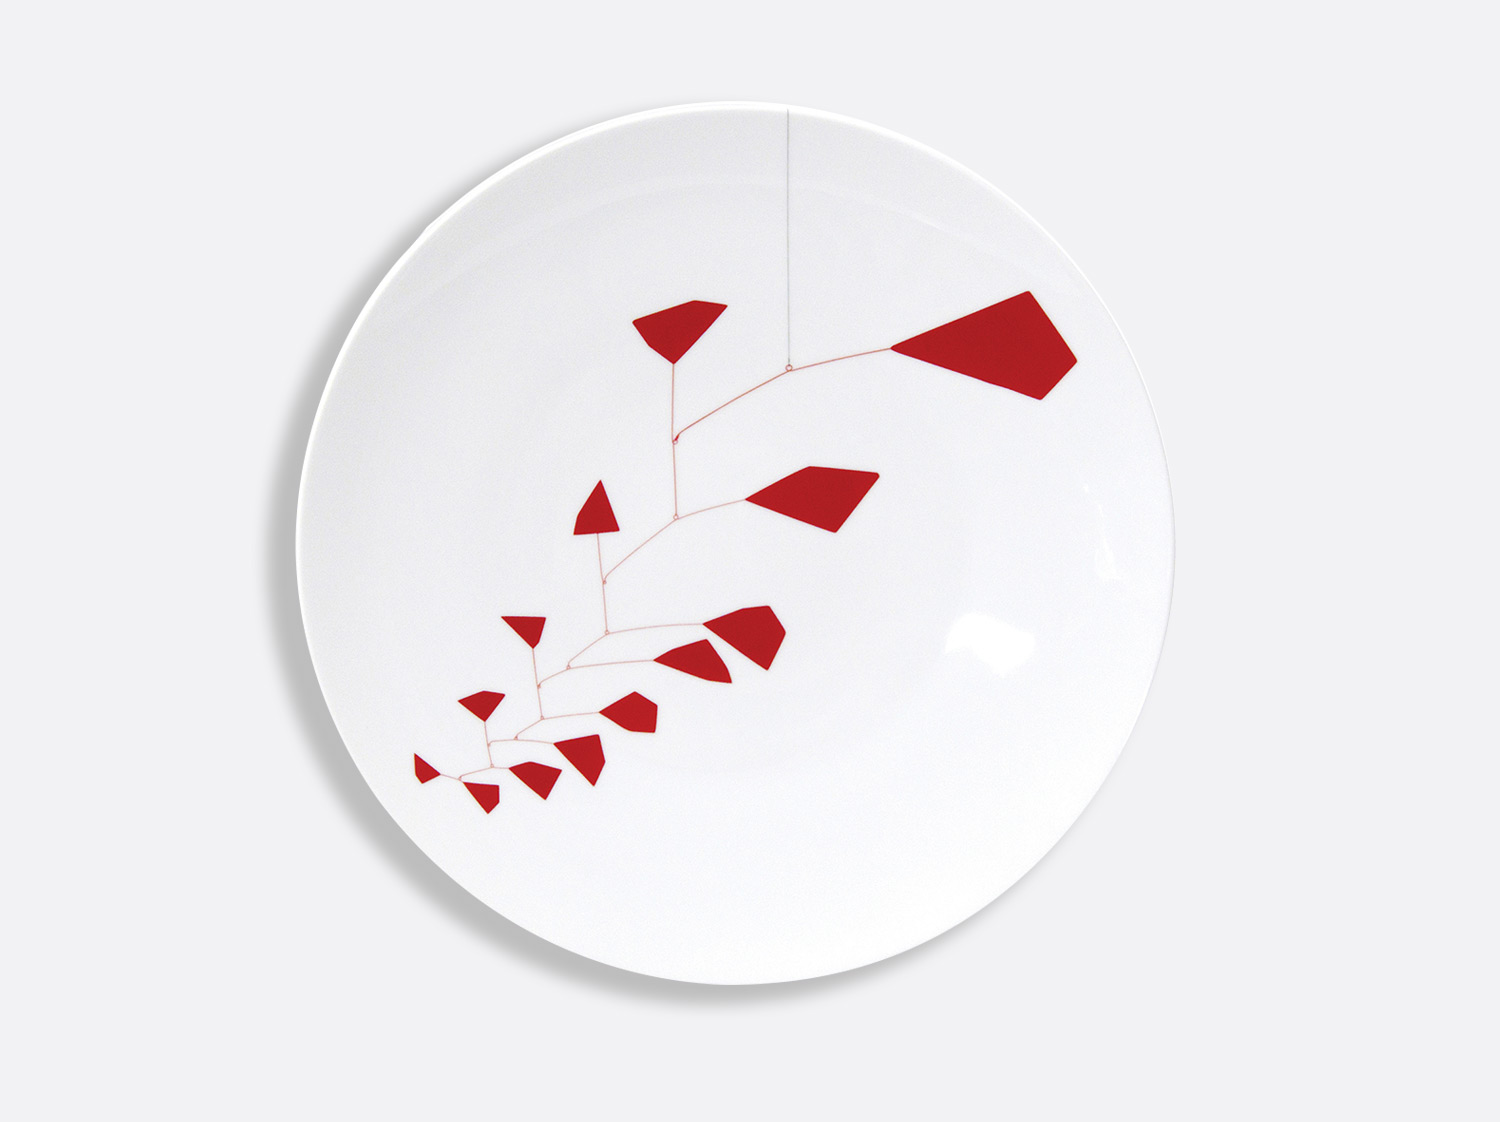 Collectioncalder assiette26 5 alexandercalder